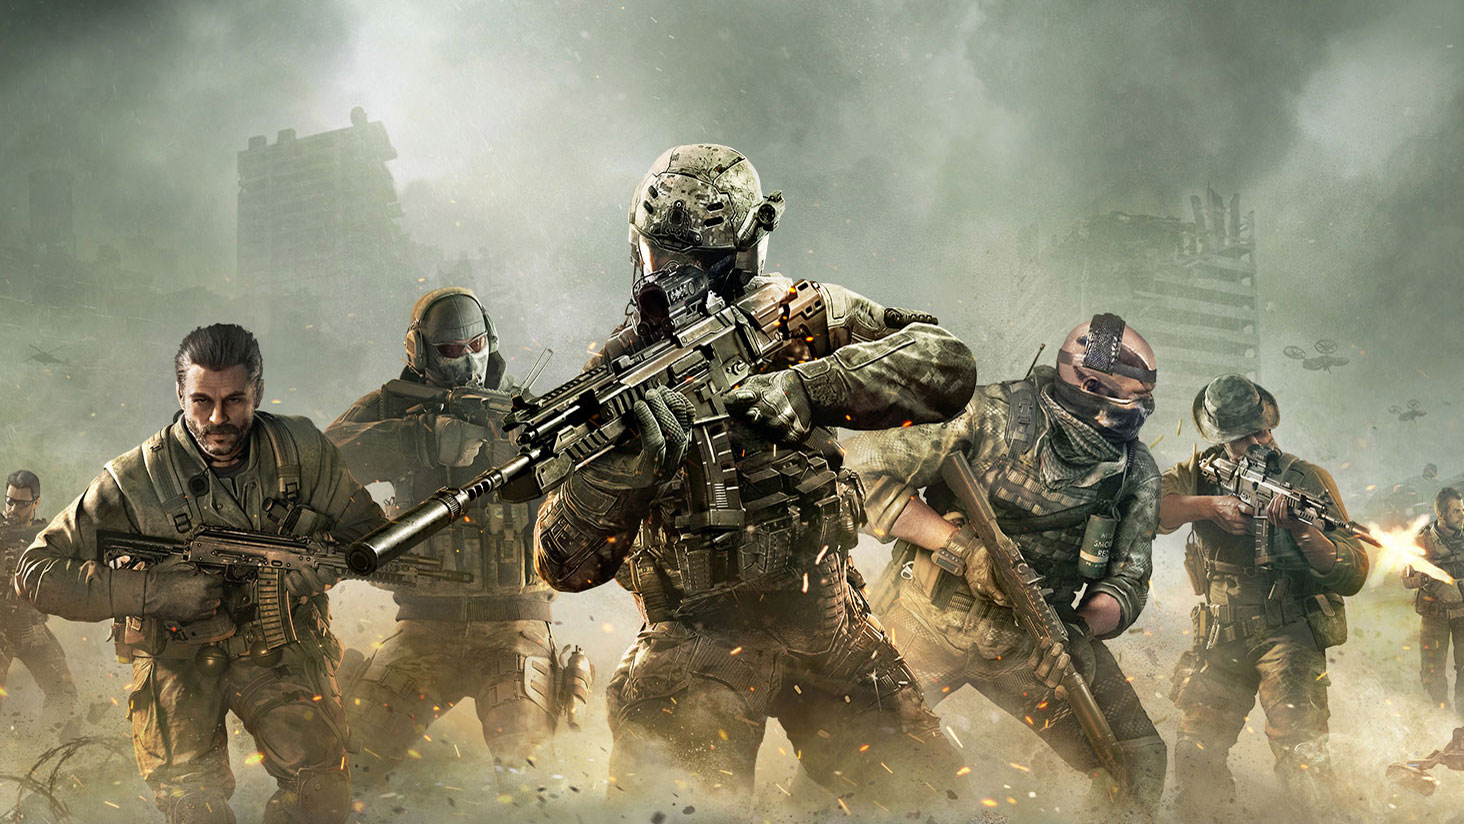 Call of Duty: Mobile was twice as popular as other mobile games in the final months of 2019